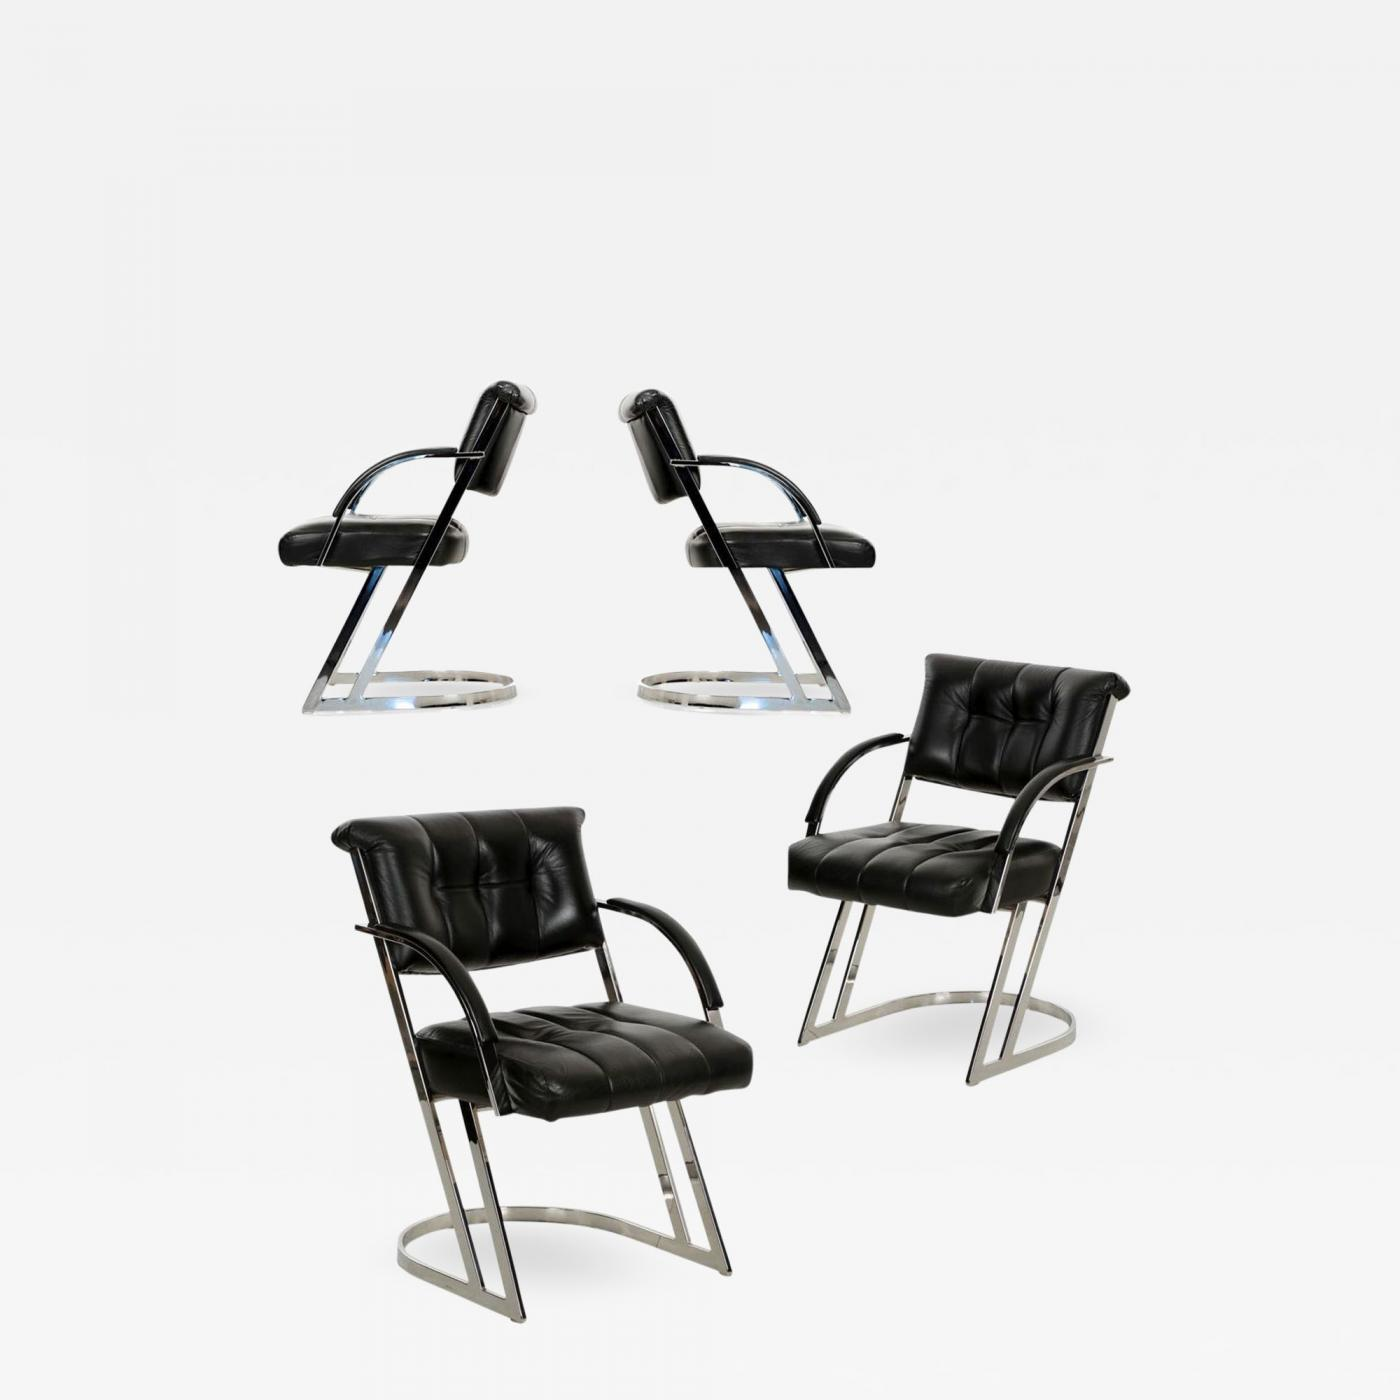 Pleasant Set Of Modern Four Chrome Steel Black Leather Dining Chairs Squirreltailoven Fun Painted Chair Ideas Images Squirreltailovenorg